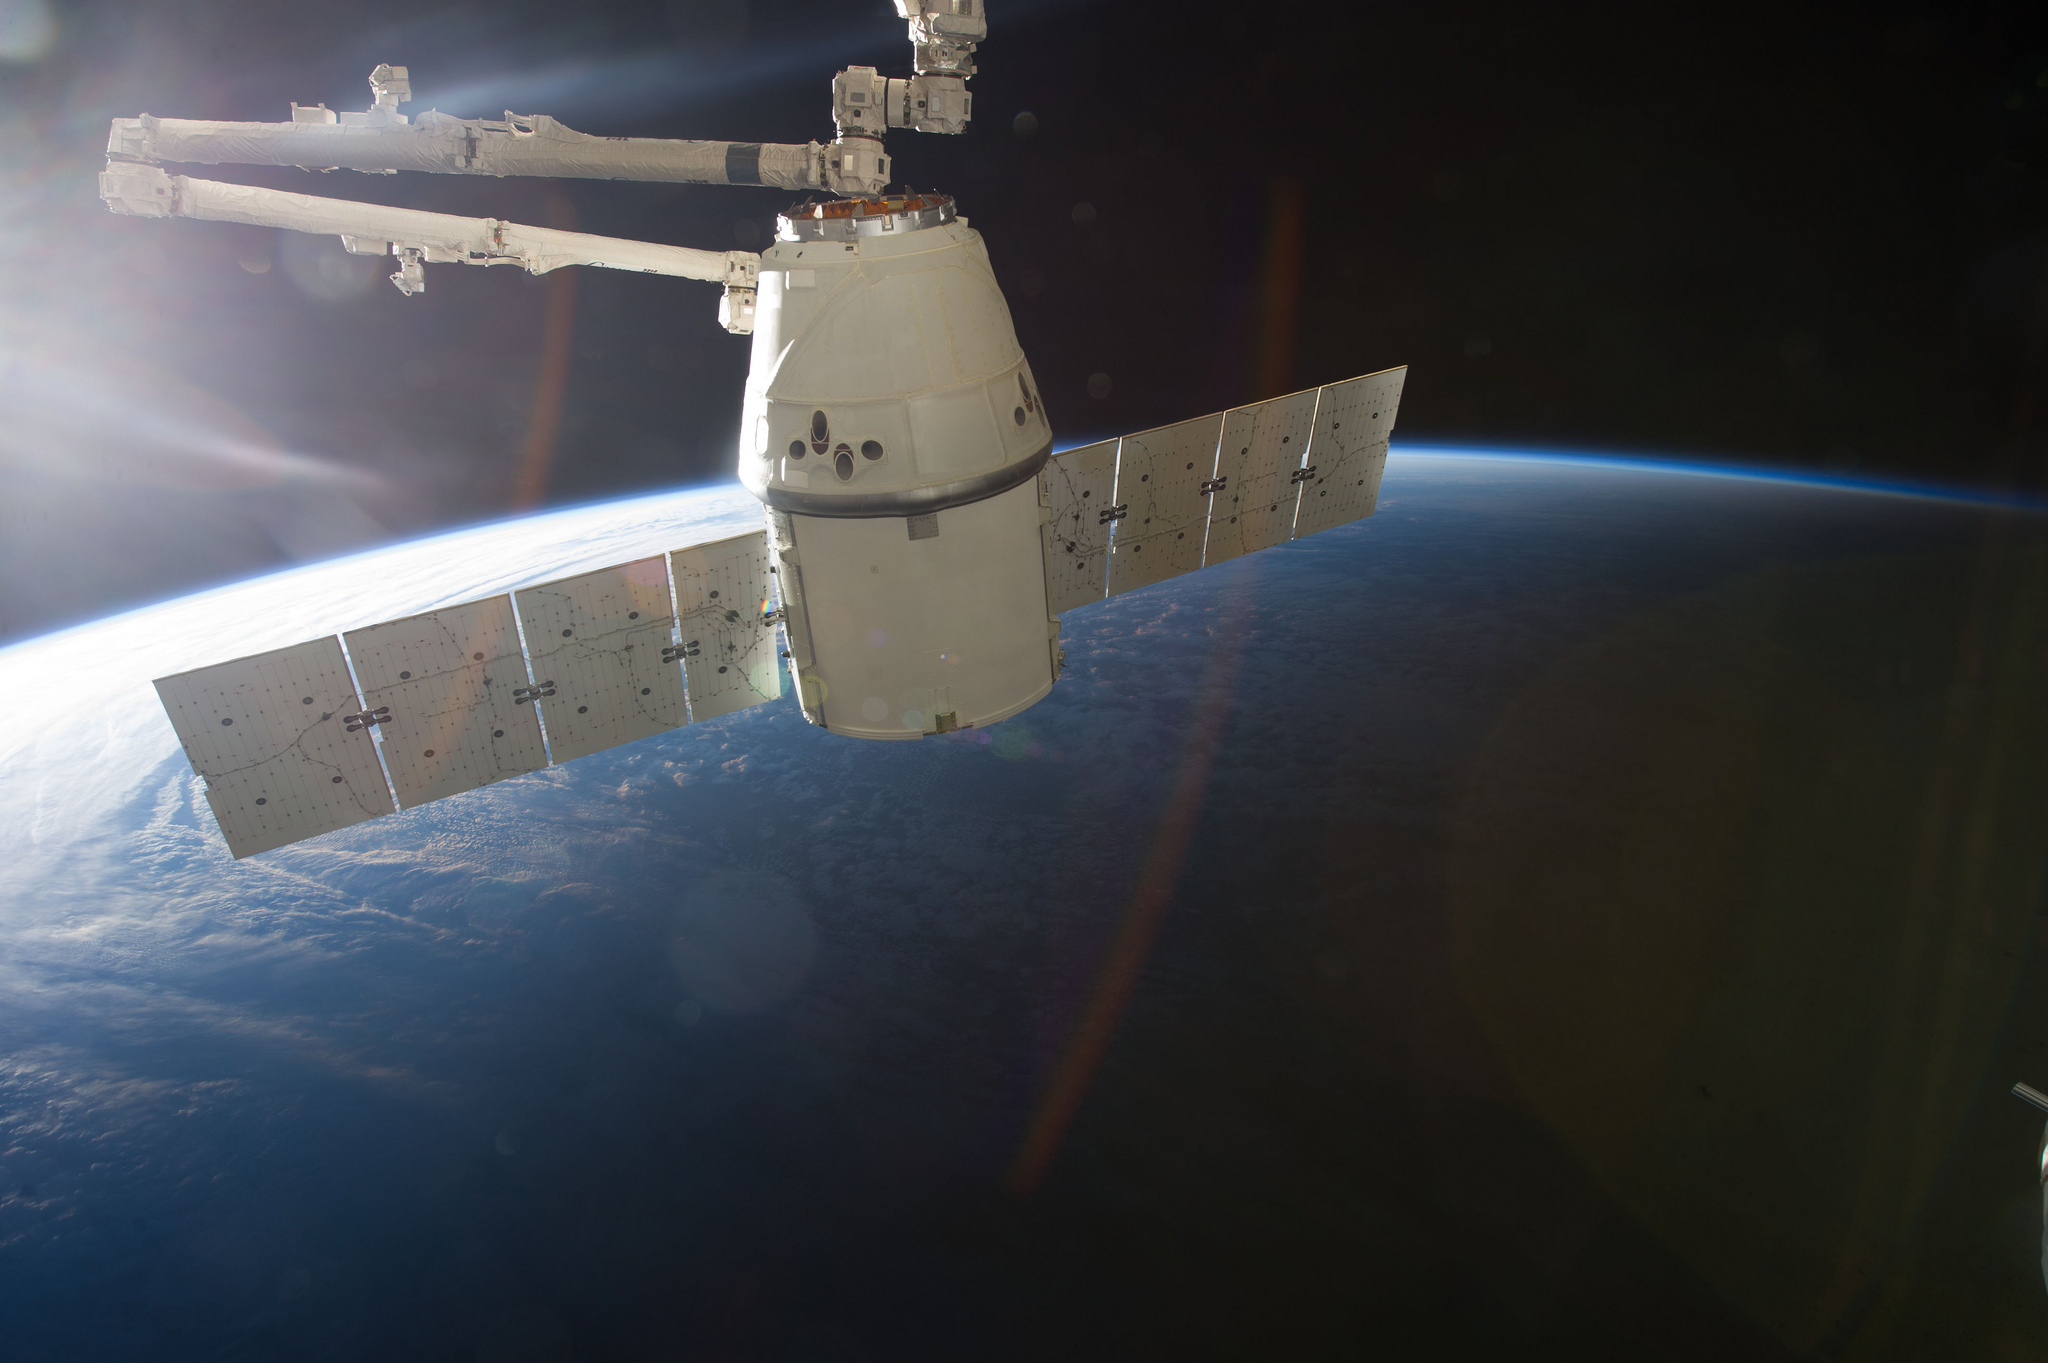 spacex dragon 2 spacecraft 26 march 2013